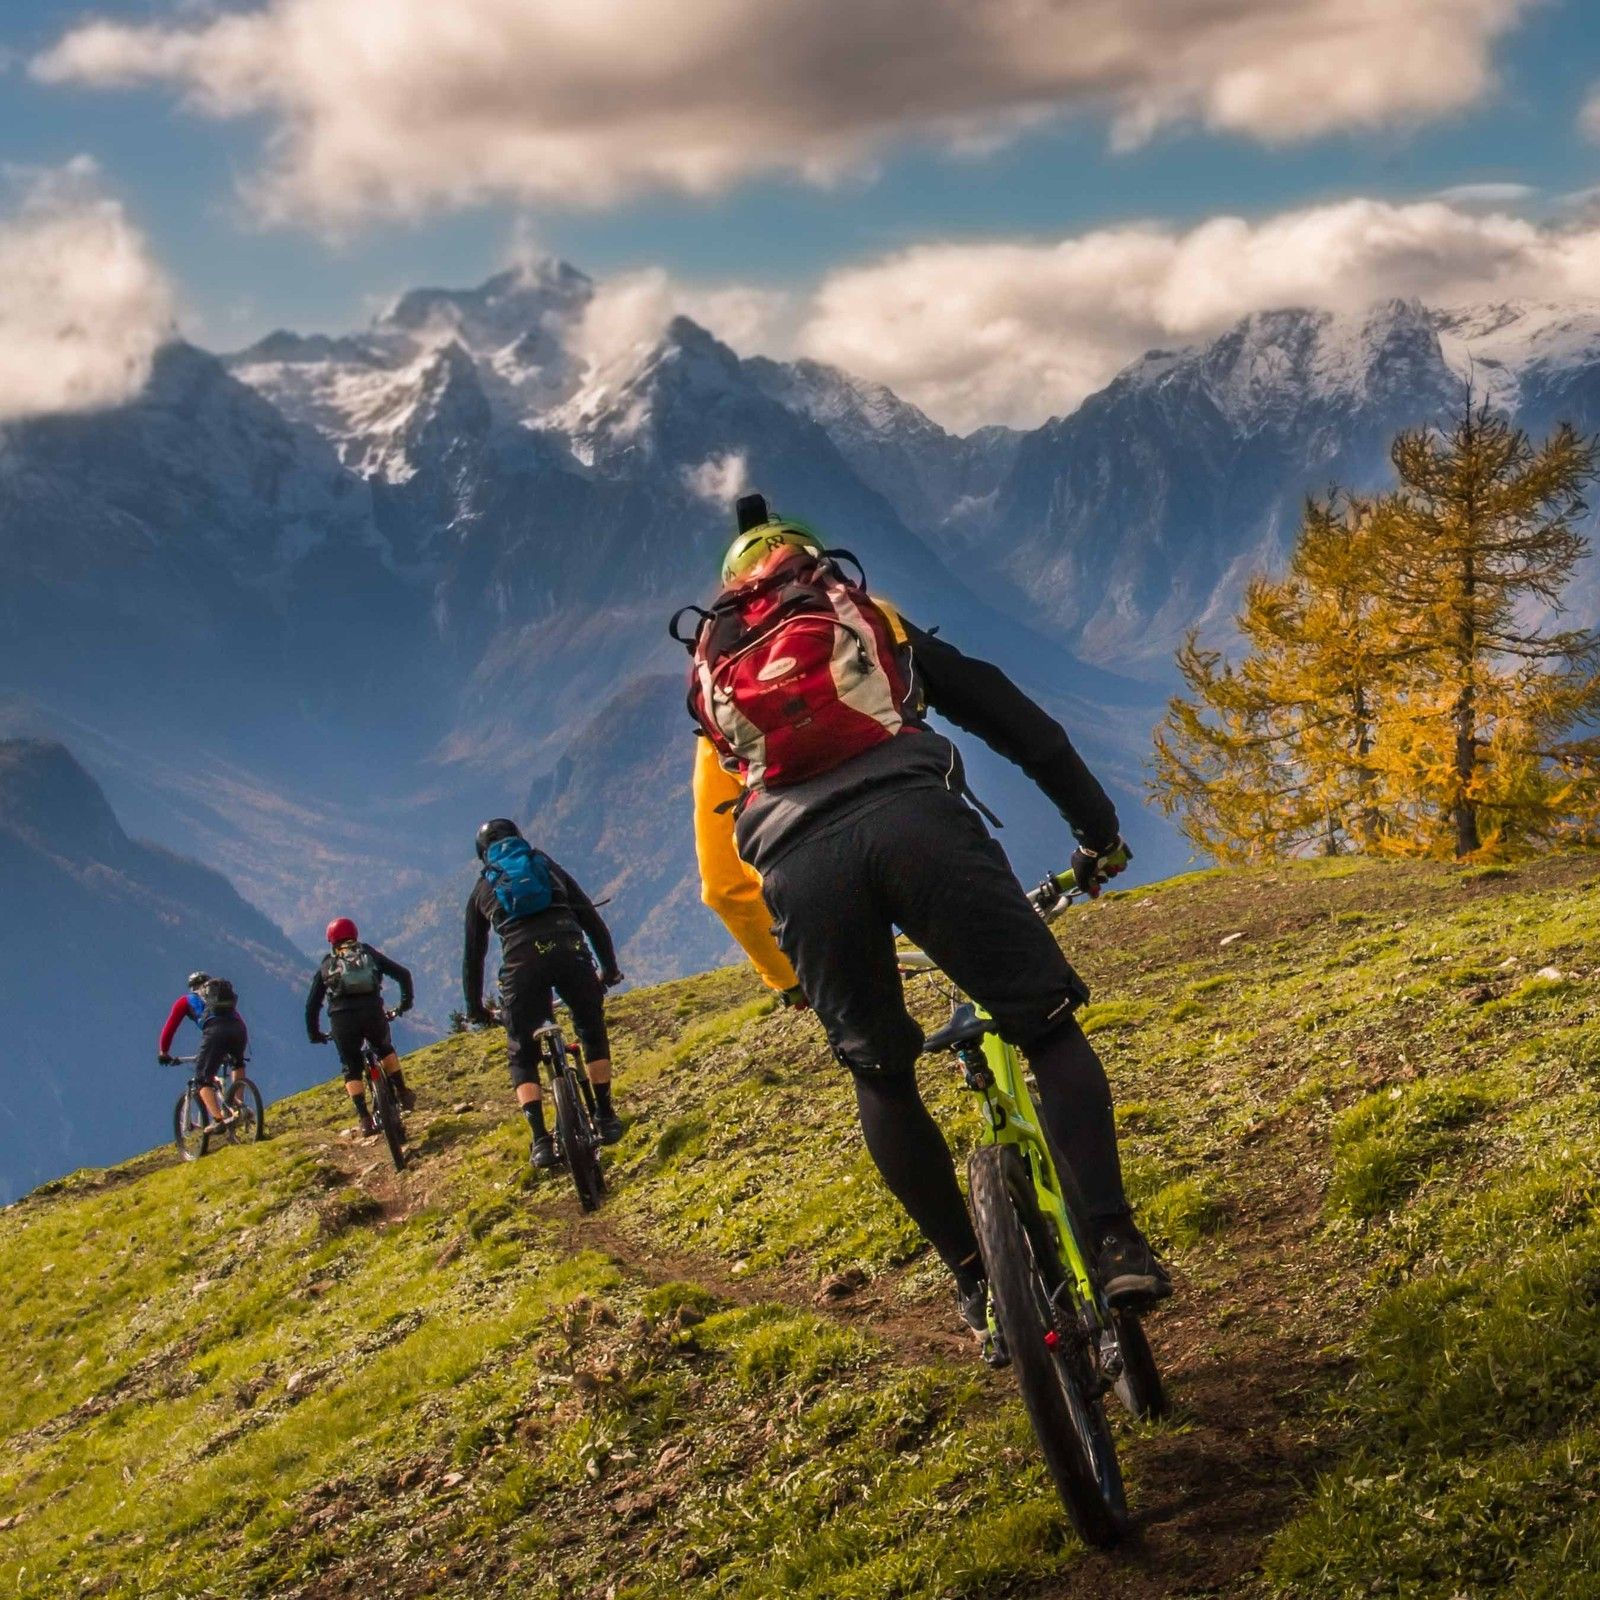 Sweet trail - berto - Mountain Biking Pictures - Vital MTB